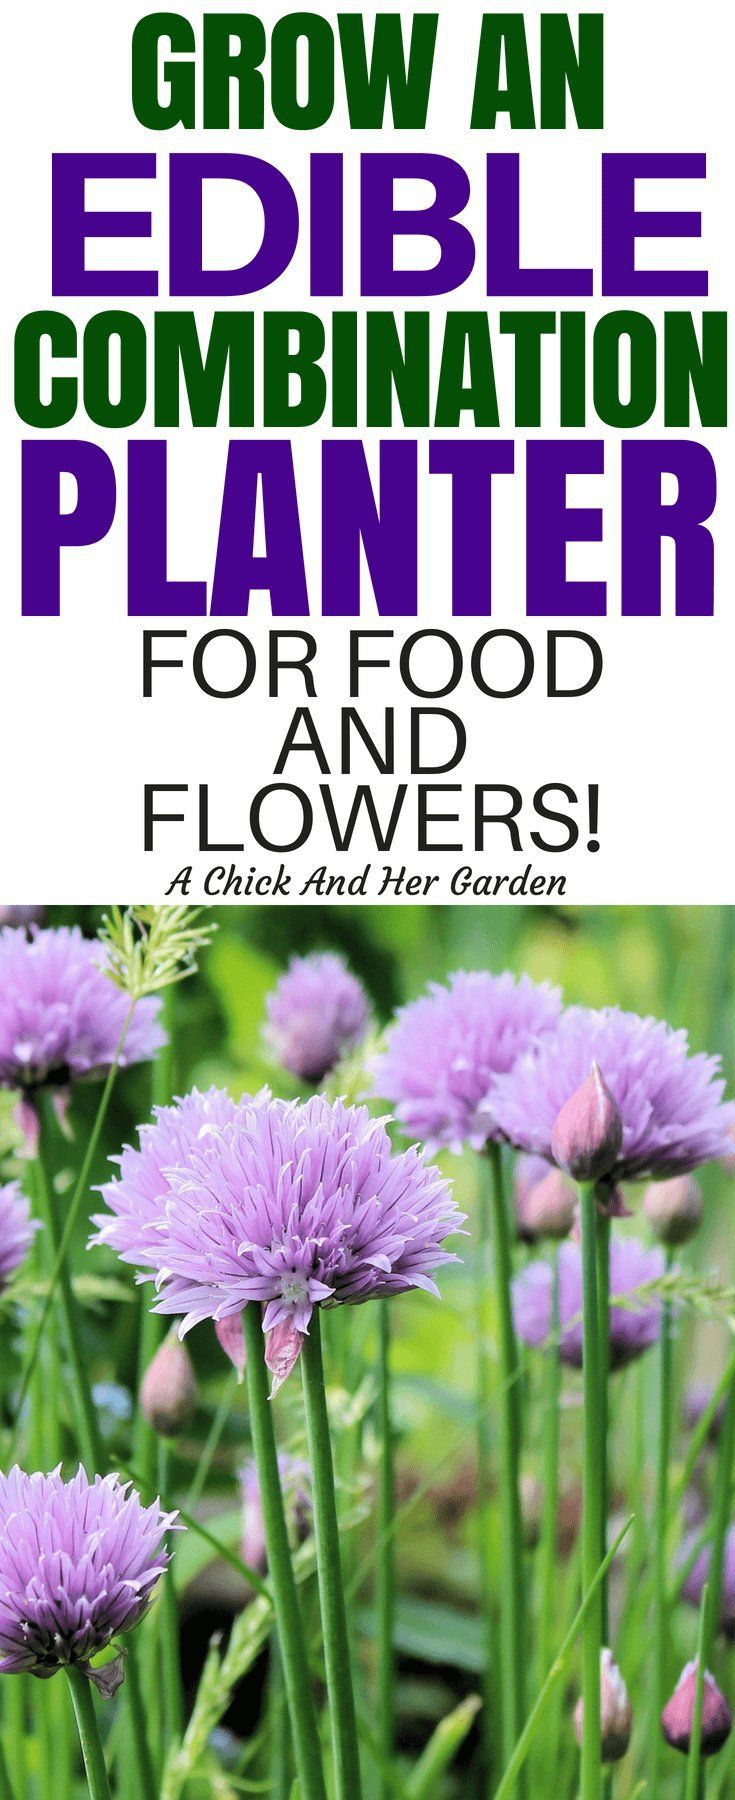 Mix And Match You Flowers With Produce And Make Edible Landscaping